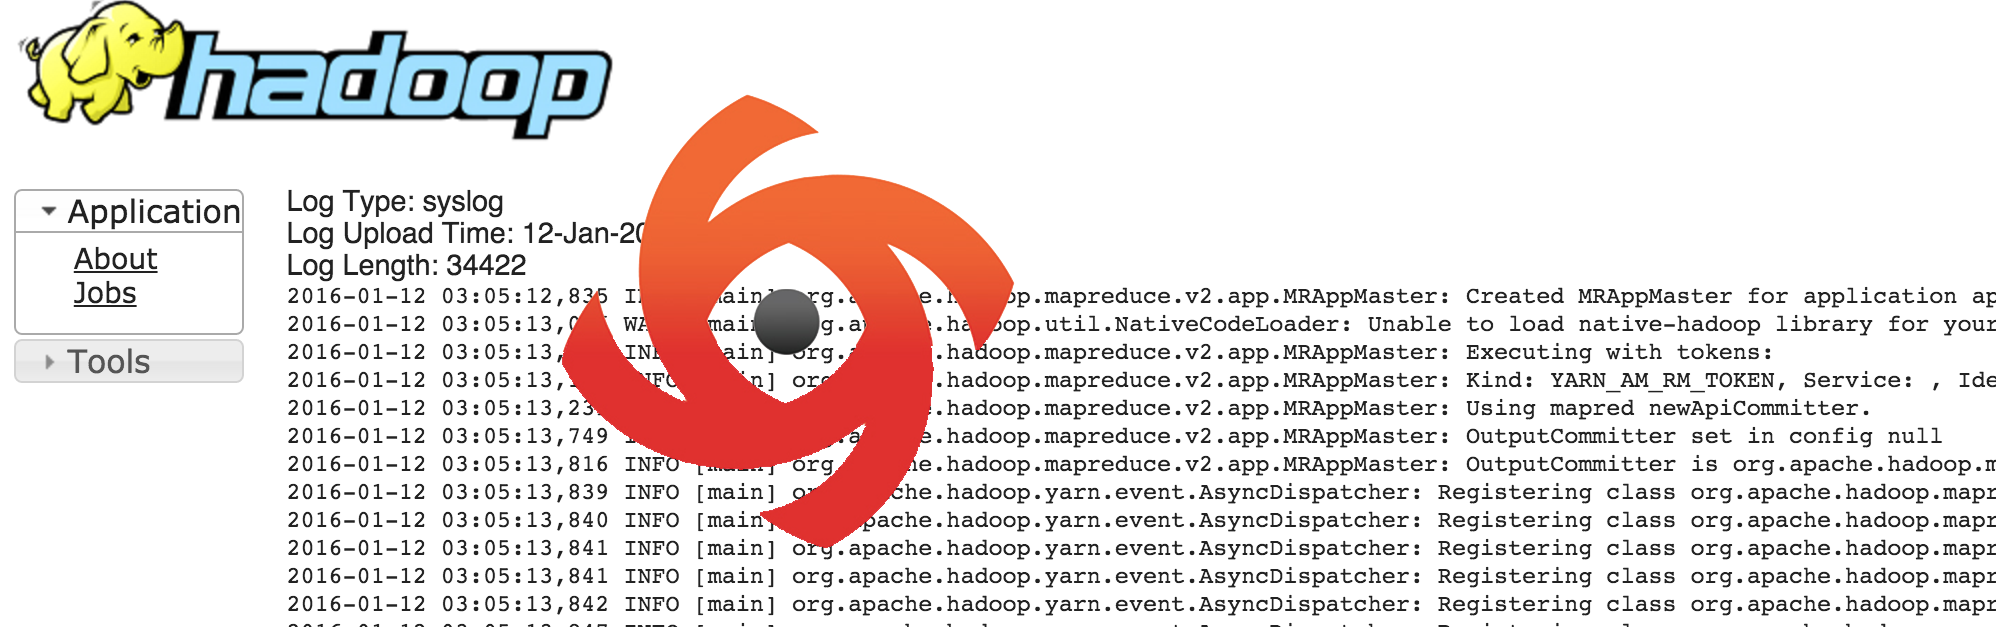 Securing Hadoop with OSSEC